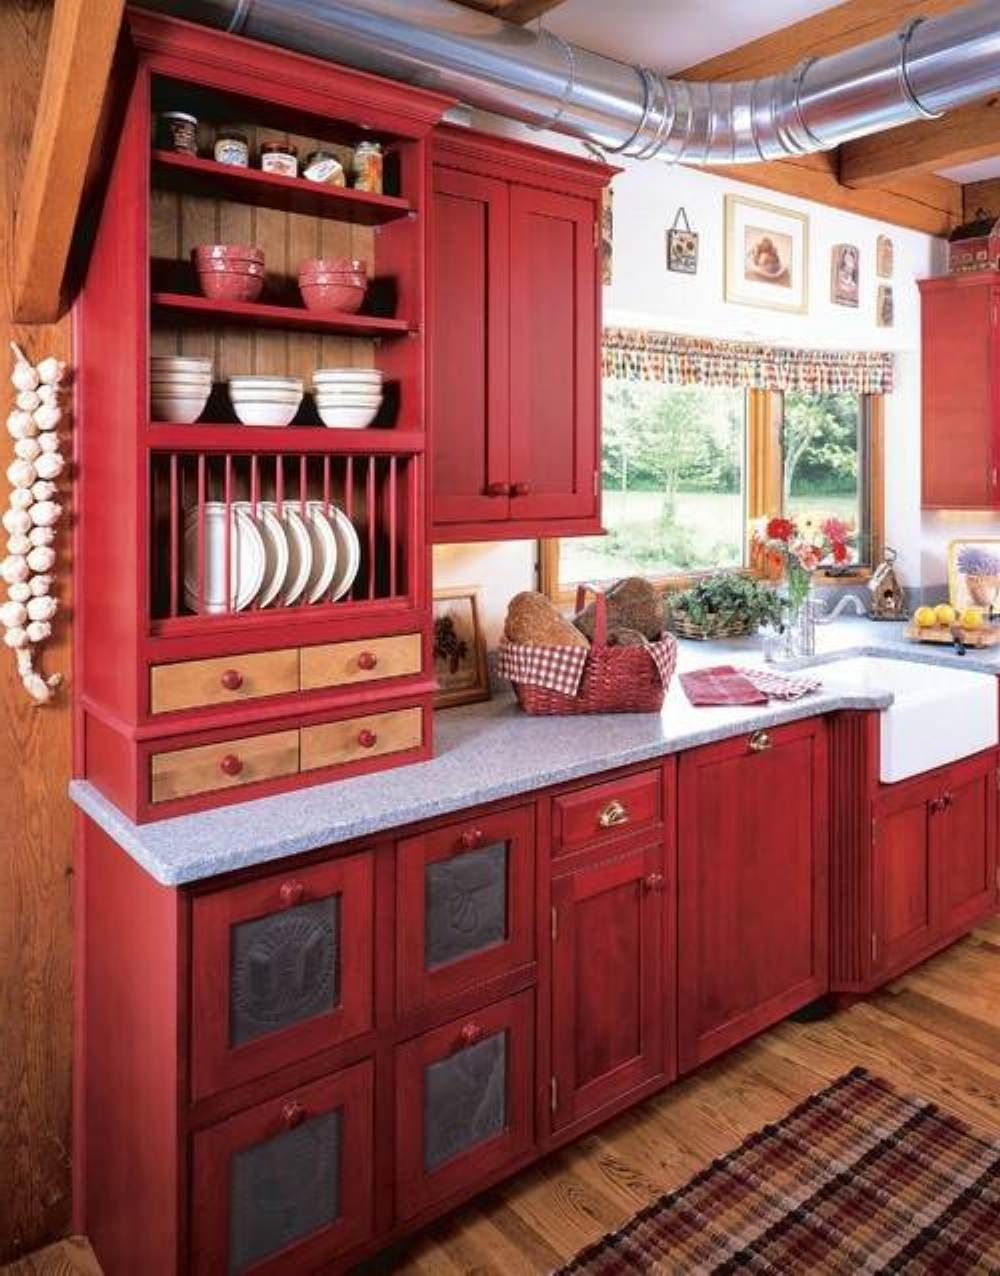 red kitchen cabinet paint colors perfect kitchen cabinet paint colors better home and garden - Home And Garden Kitchen Designs